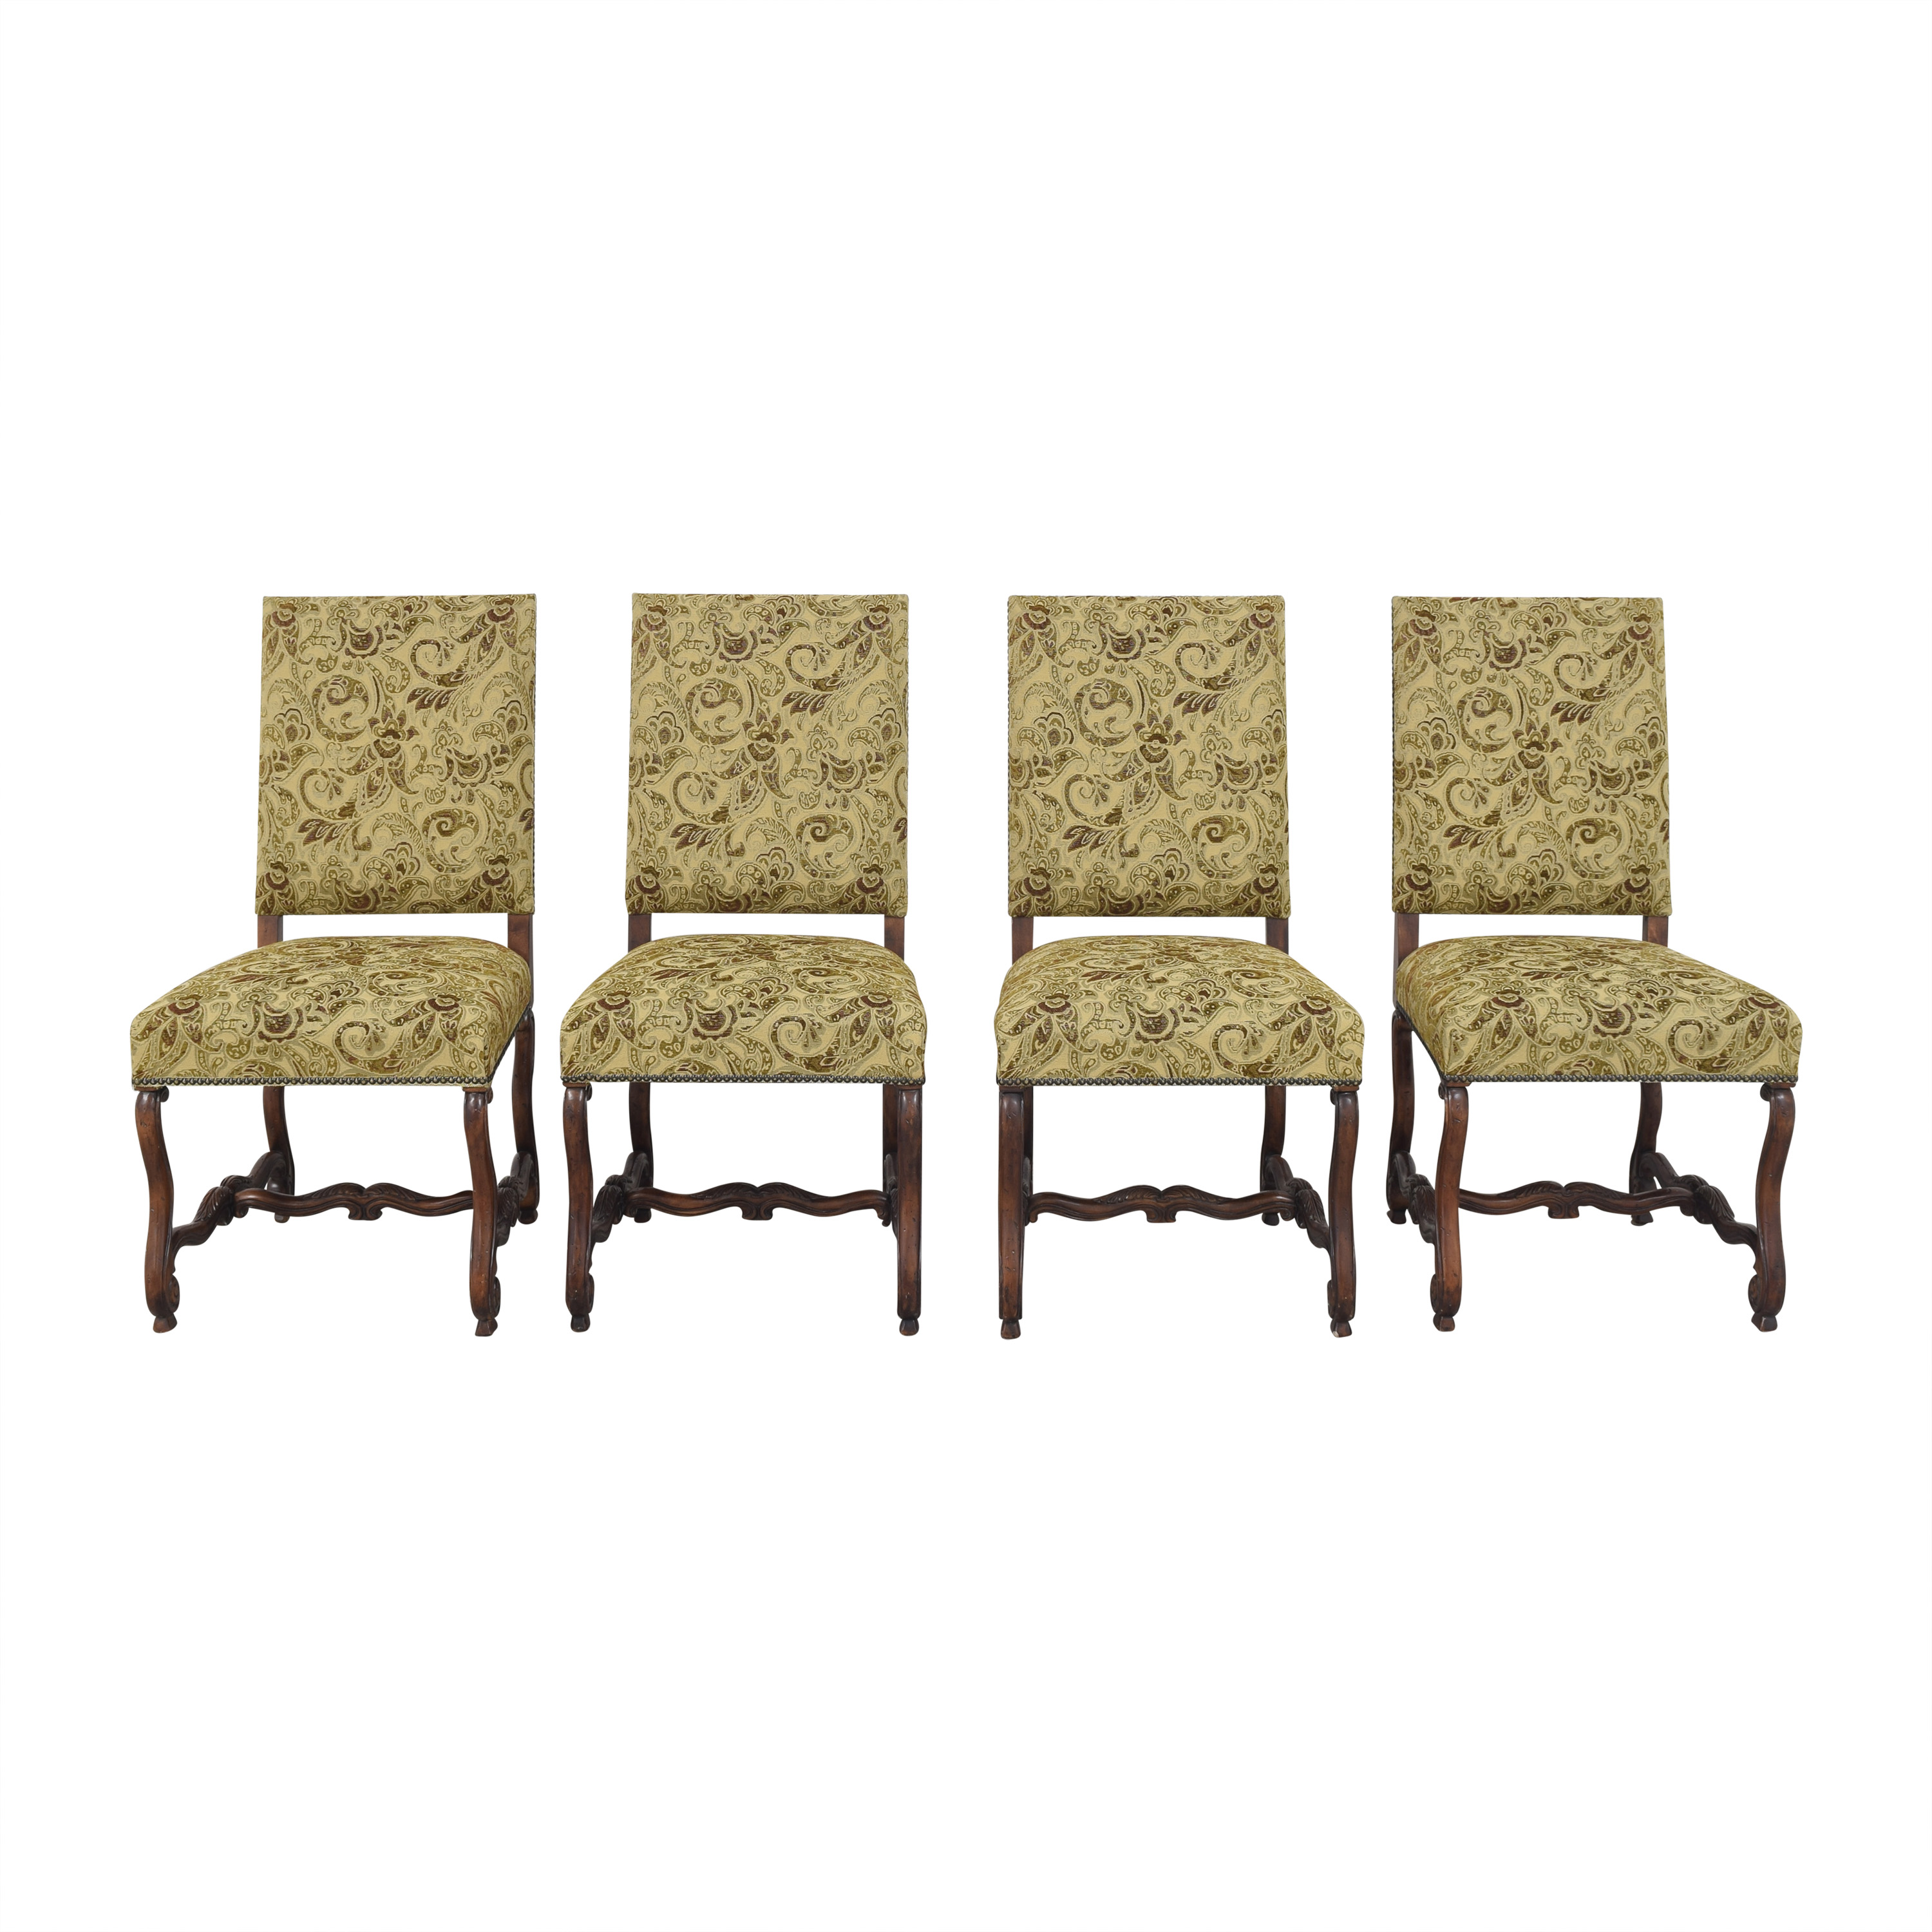 Safavieh Safavieh Paisley Upholstered Dining Chairs pa